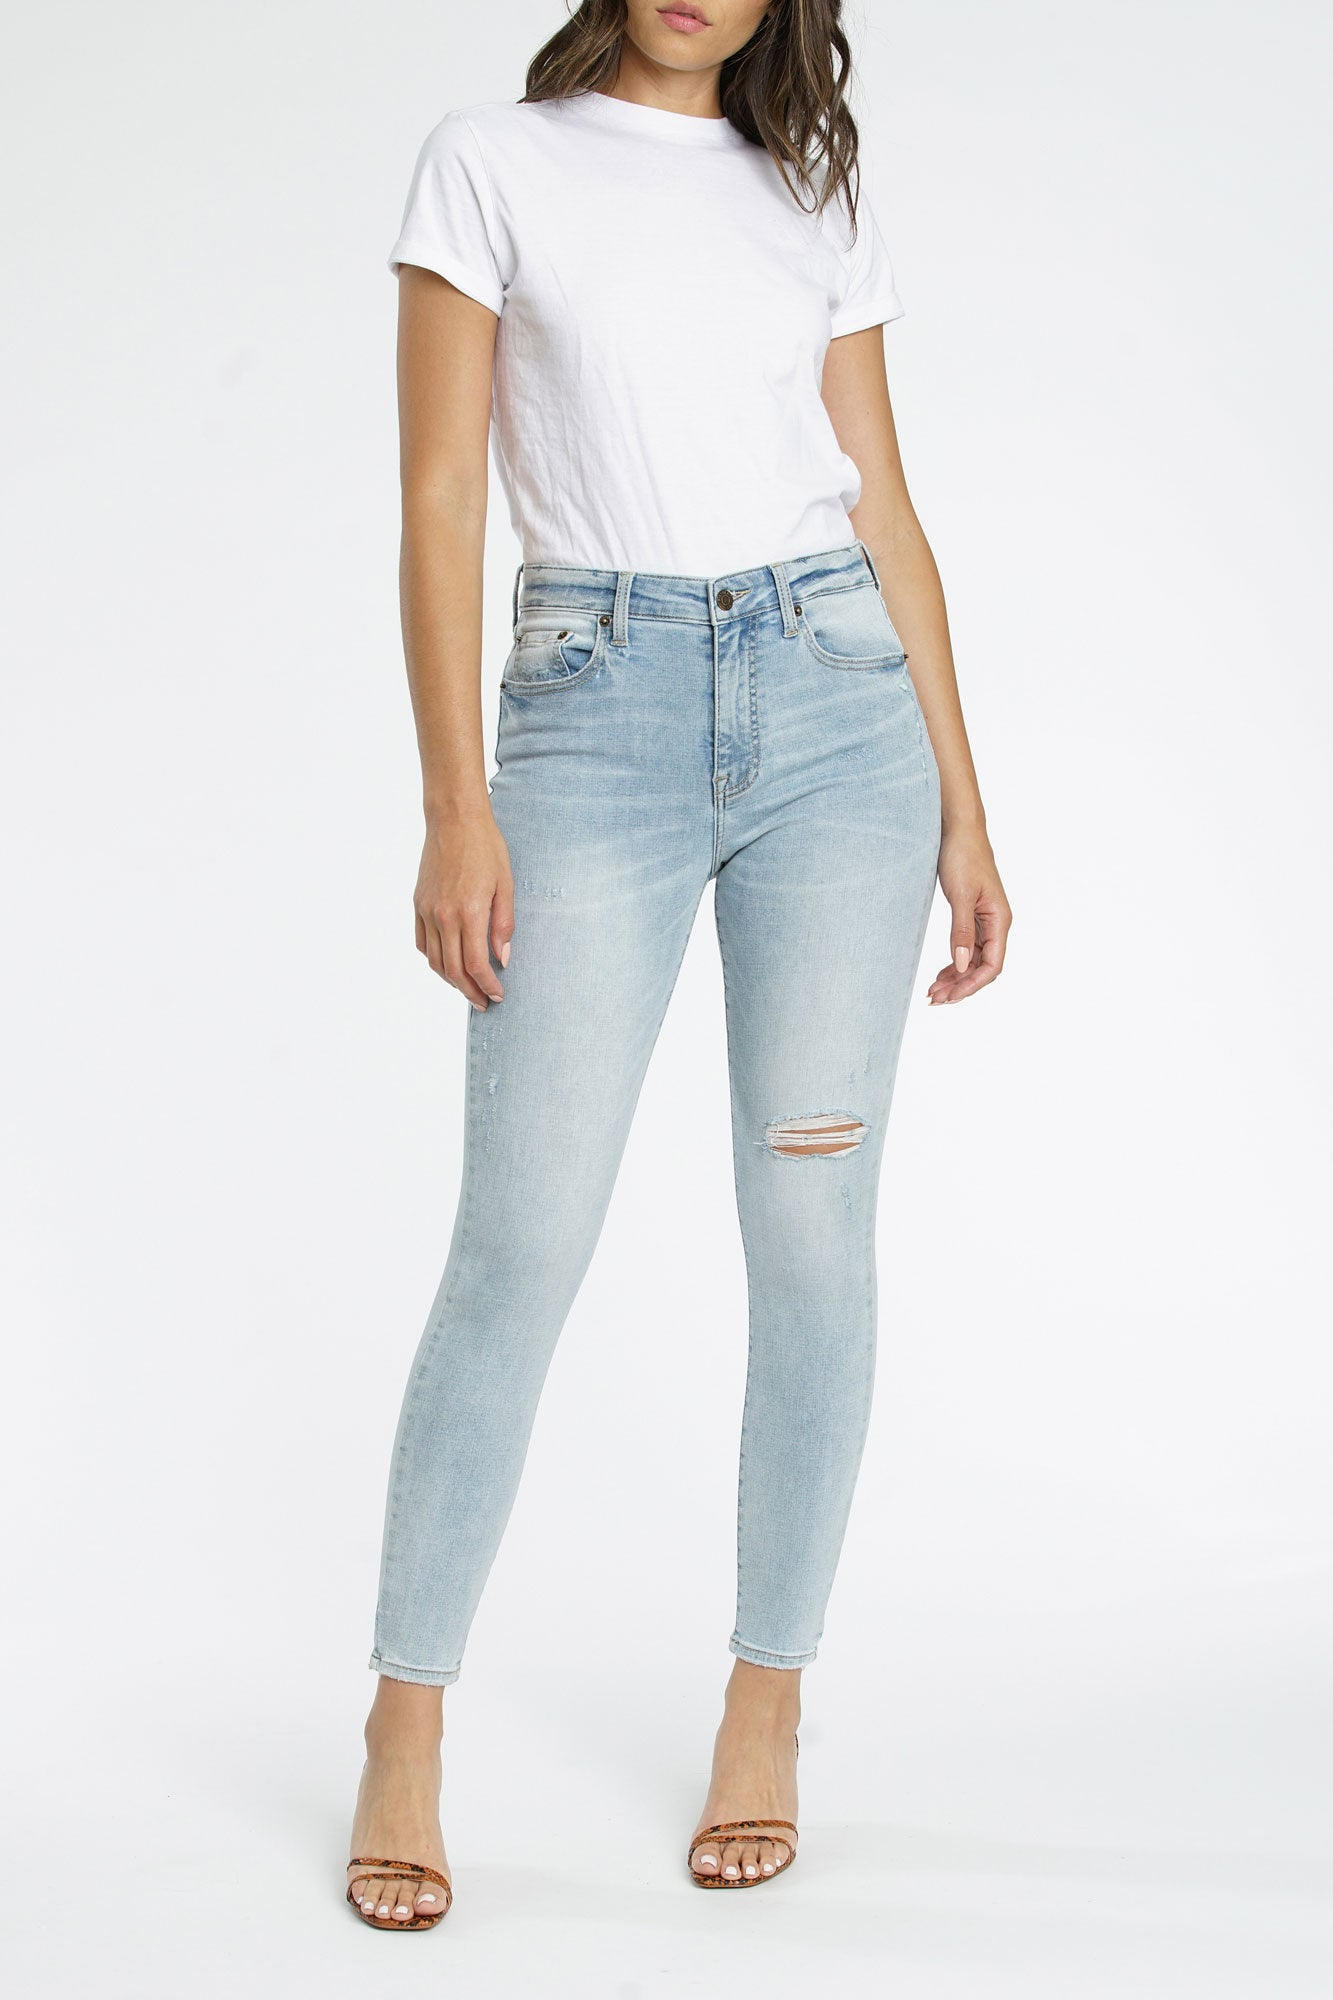 Aline High Rise Skinny - Seeker